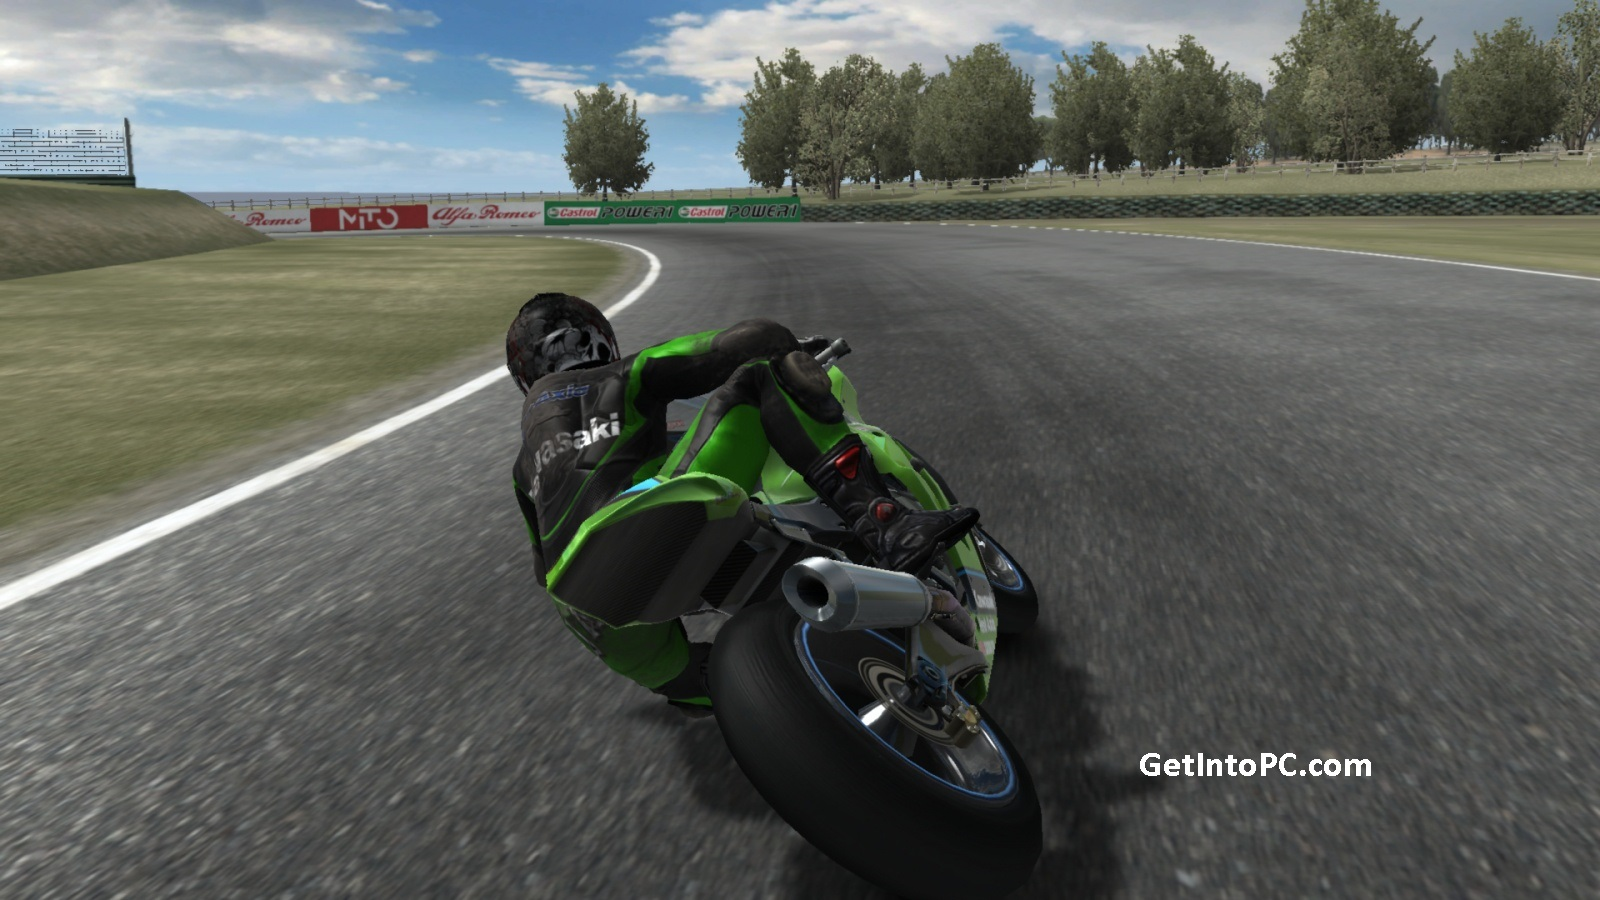 All Bikes Game Download Pc This Bike racing game has